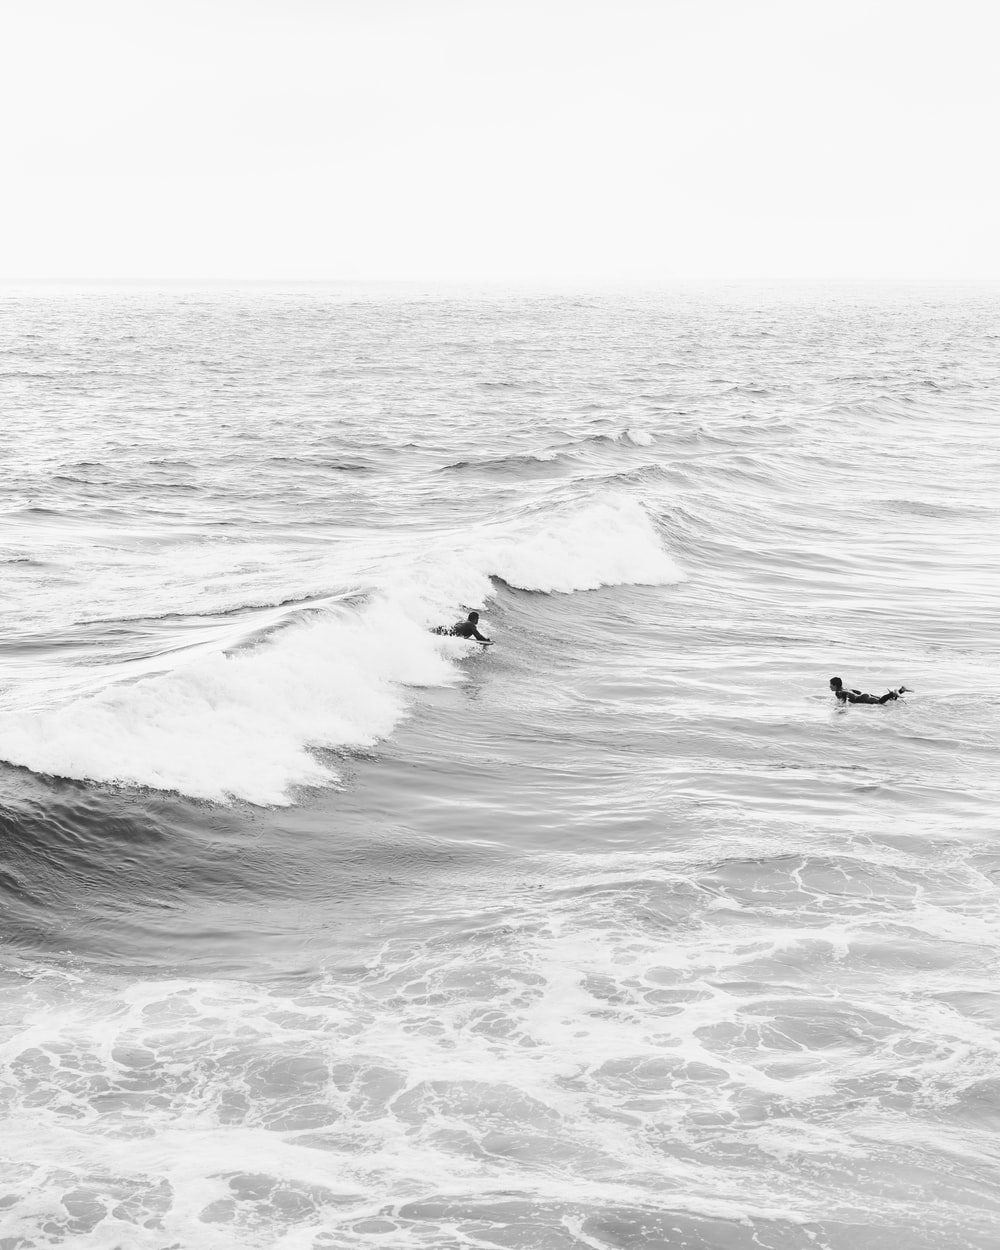 grayscale photo of person surfing on sea waves